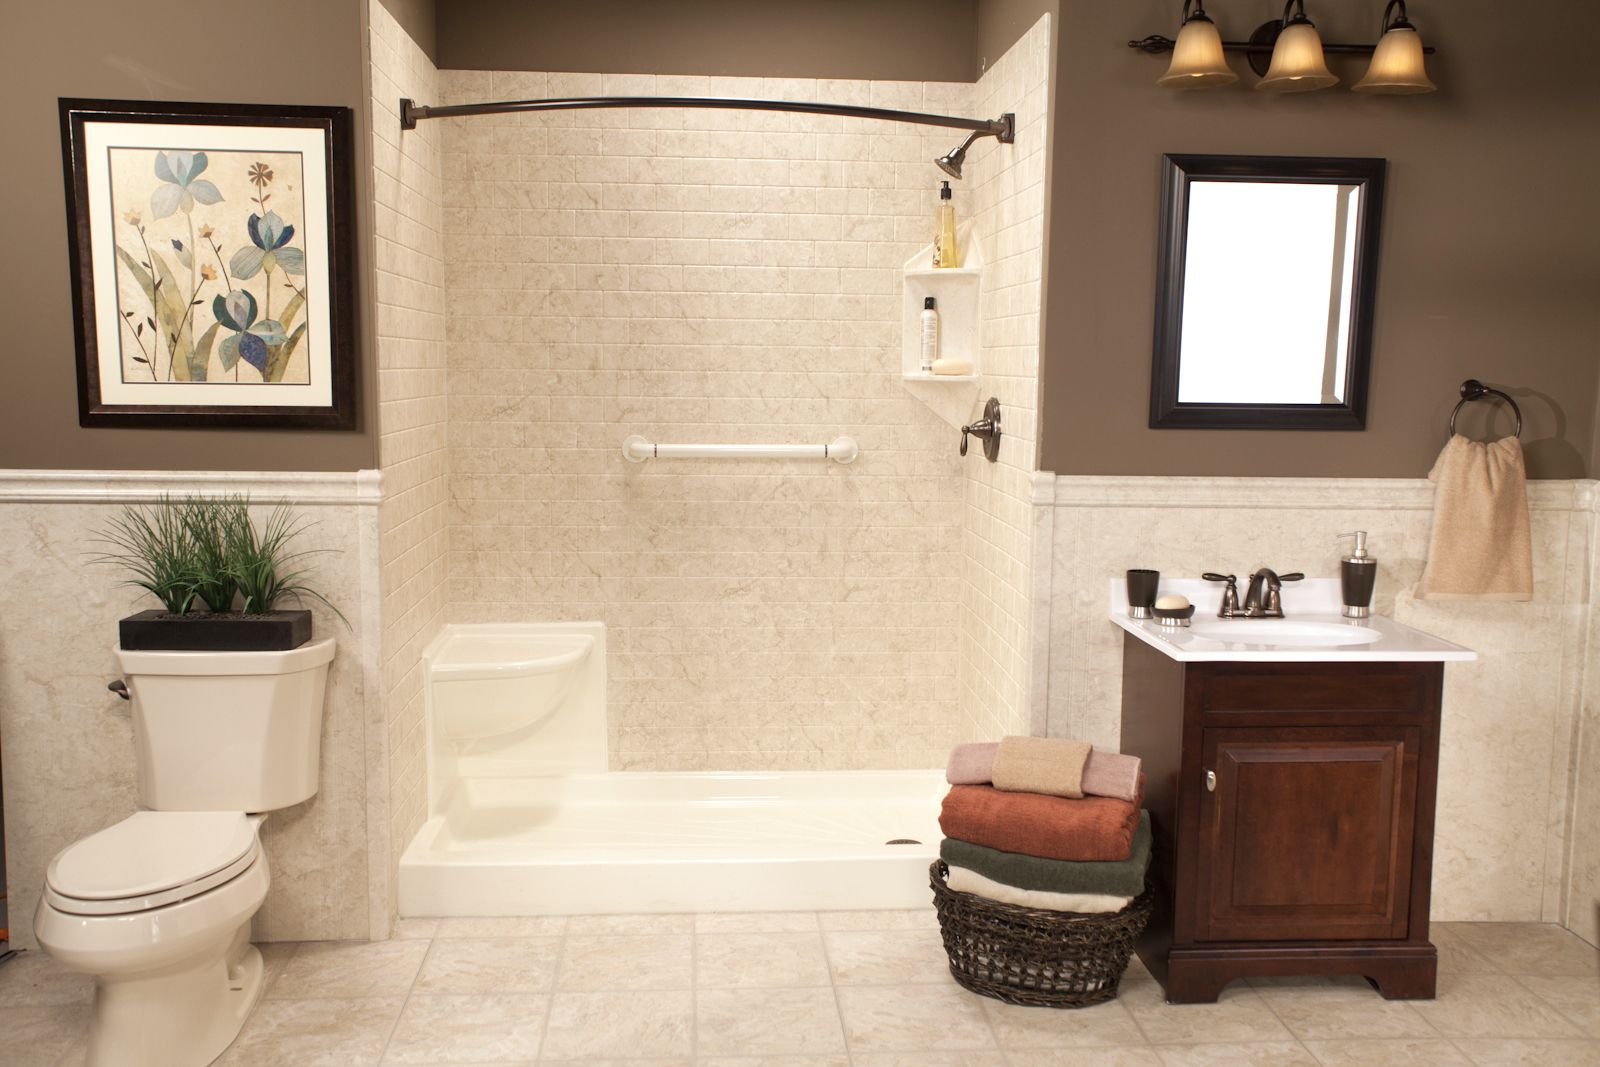 Exceptional Bath Planet Arizona Is The Fastest Growing Bathroom Remodeler In Phoenix.  We Offer Bathroom Remodeling Solutions Including Tub To Shower Conversion,  ...